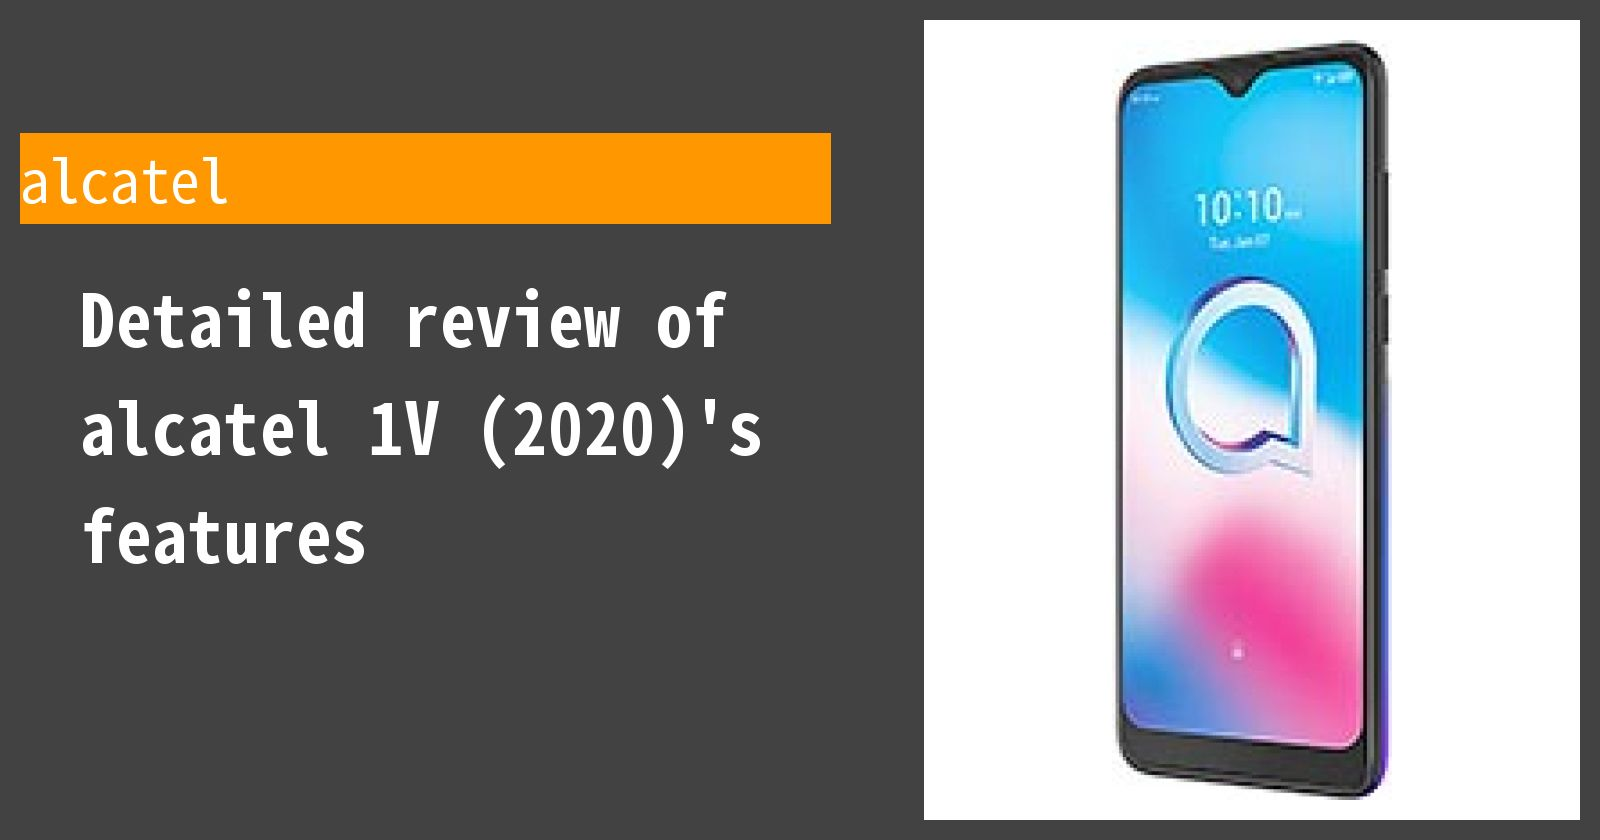 Detailed review of alcatel 1V (2020)'s features